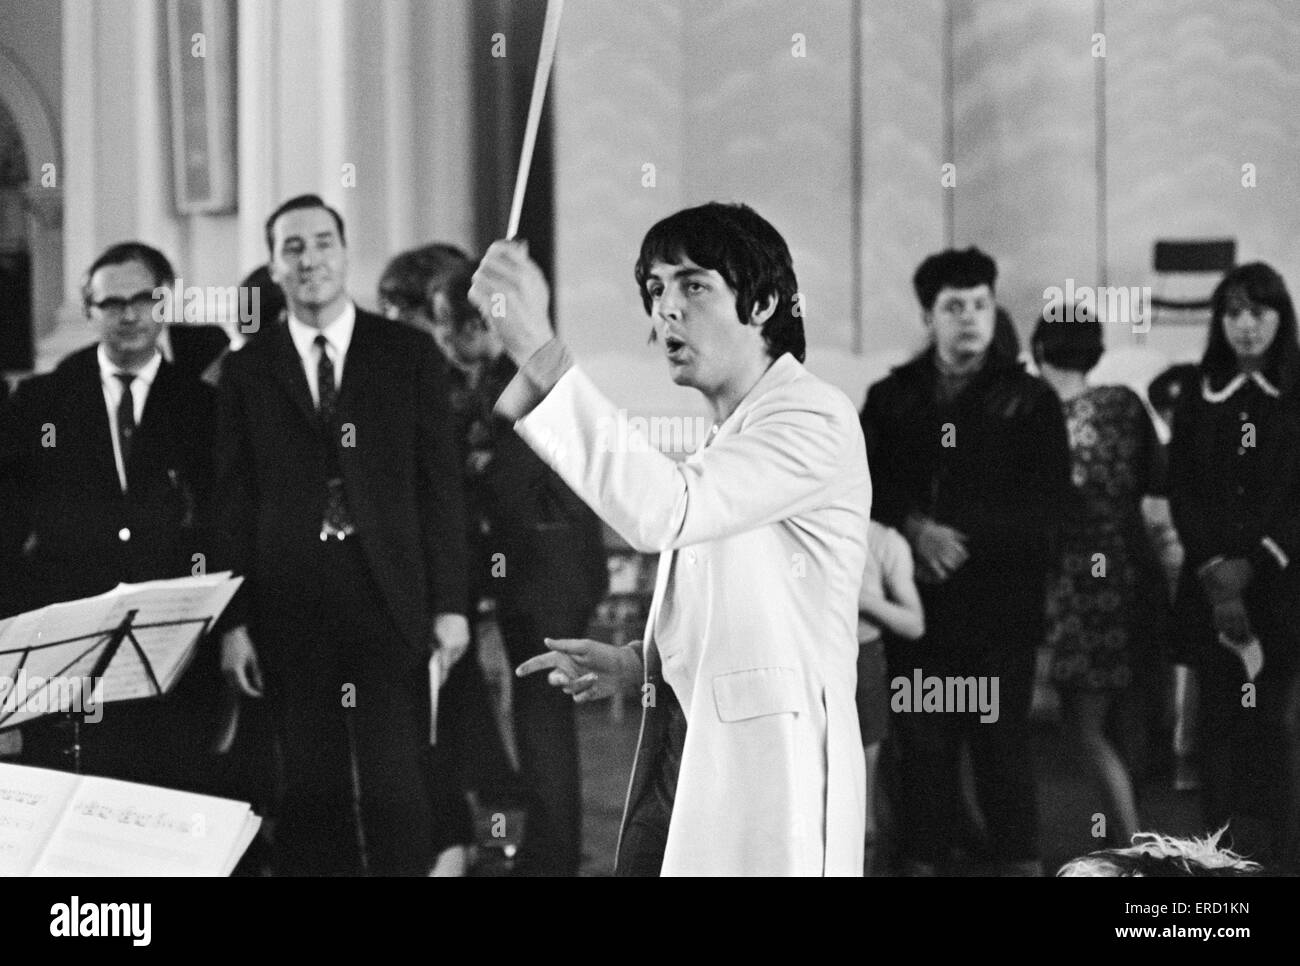 Paul McCartney of The Beatles, conducts the Black Dyke Mills